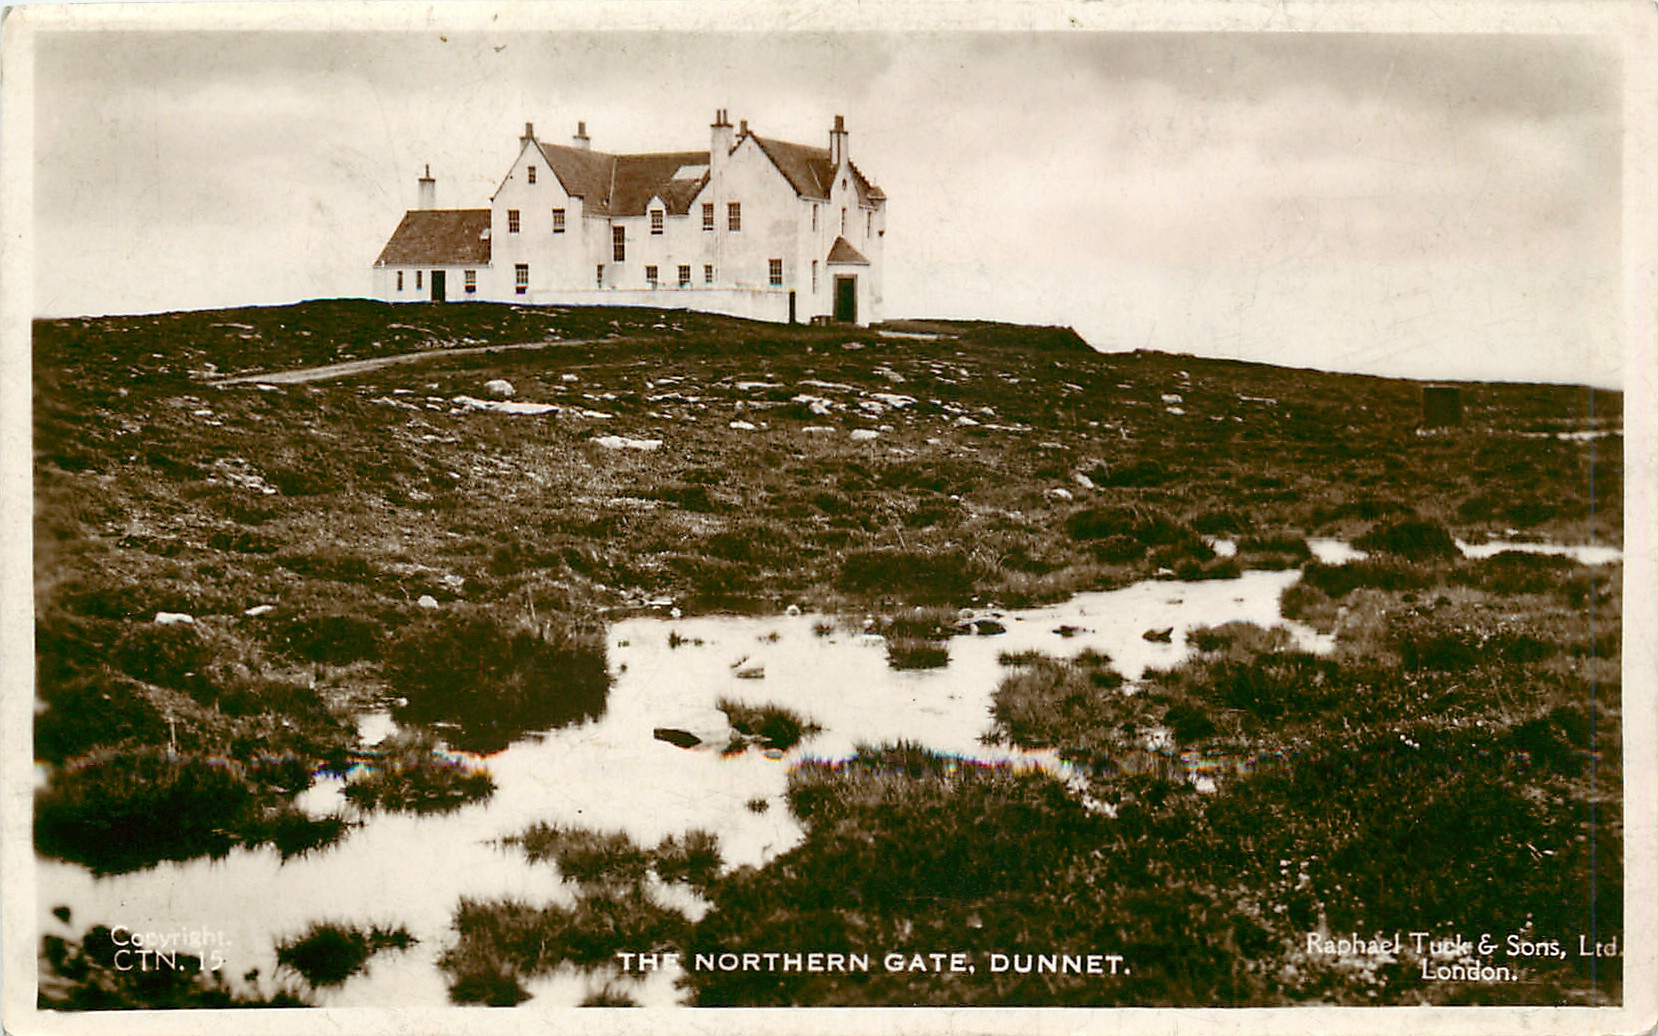 The House of the Northern Gate circa 1935